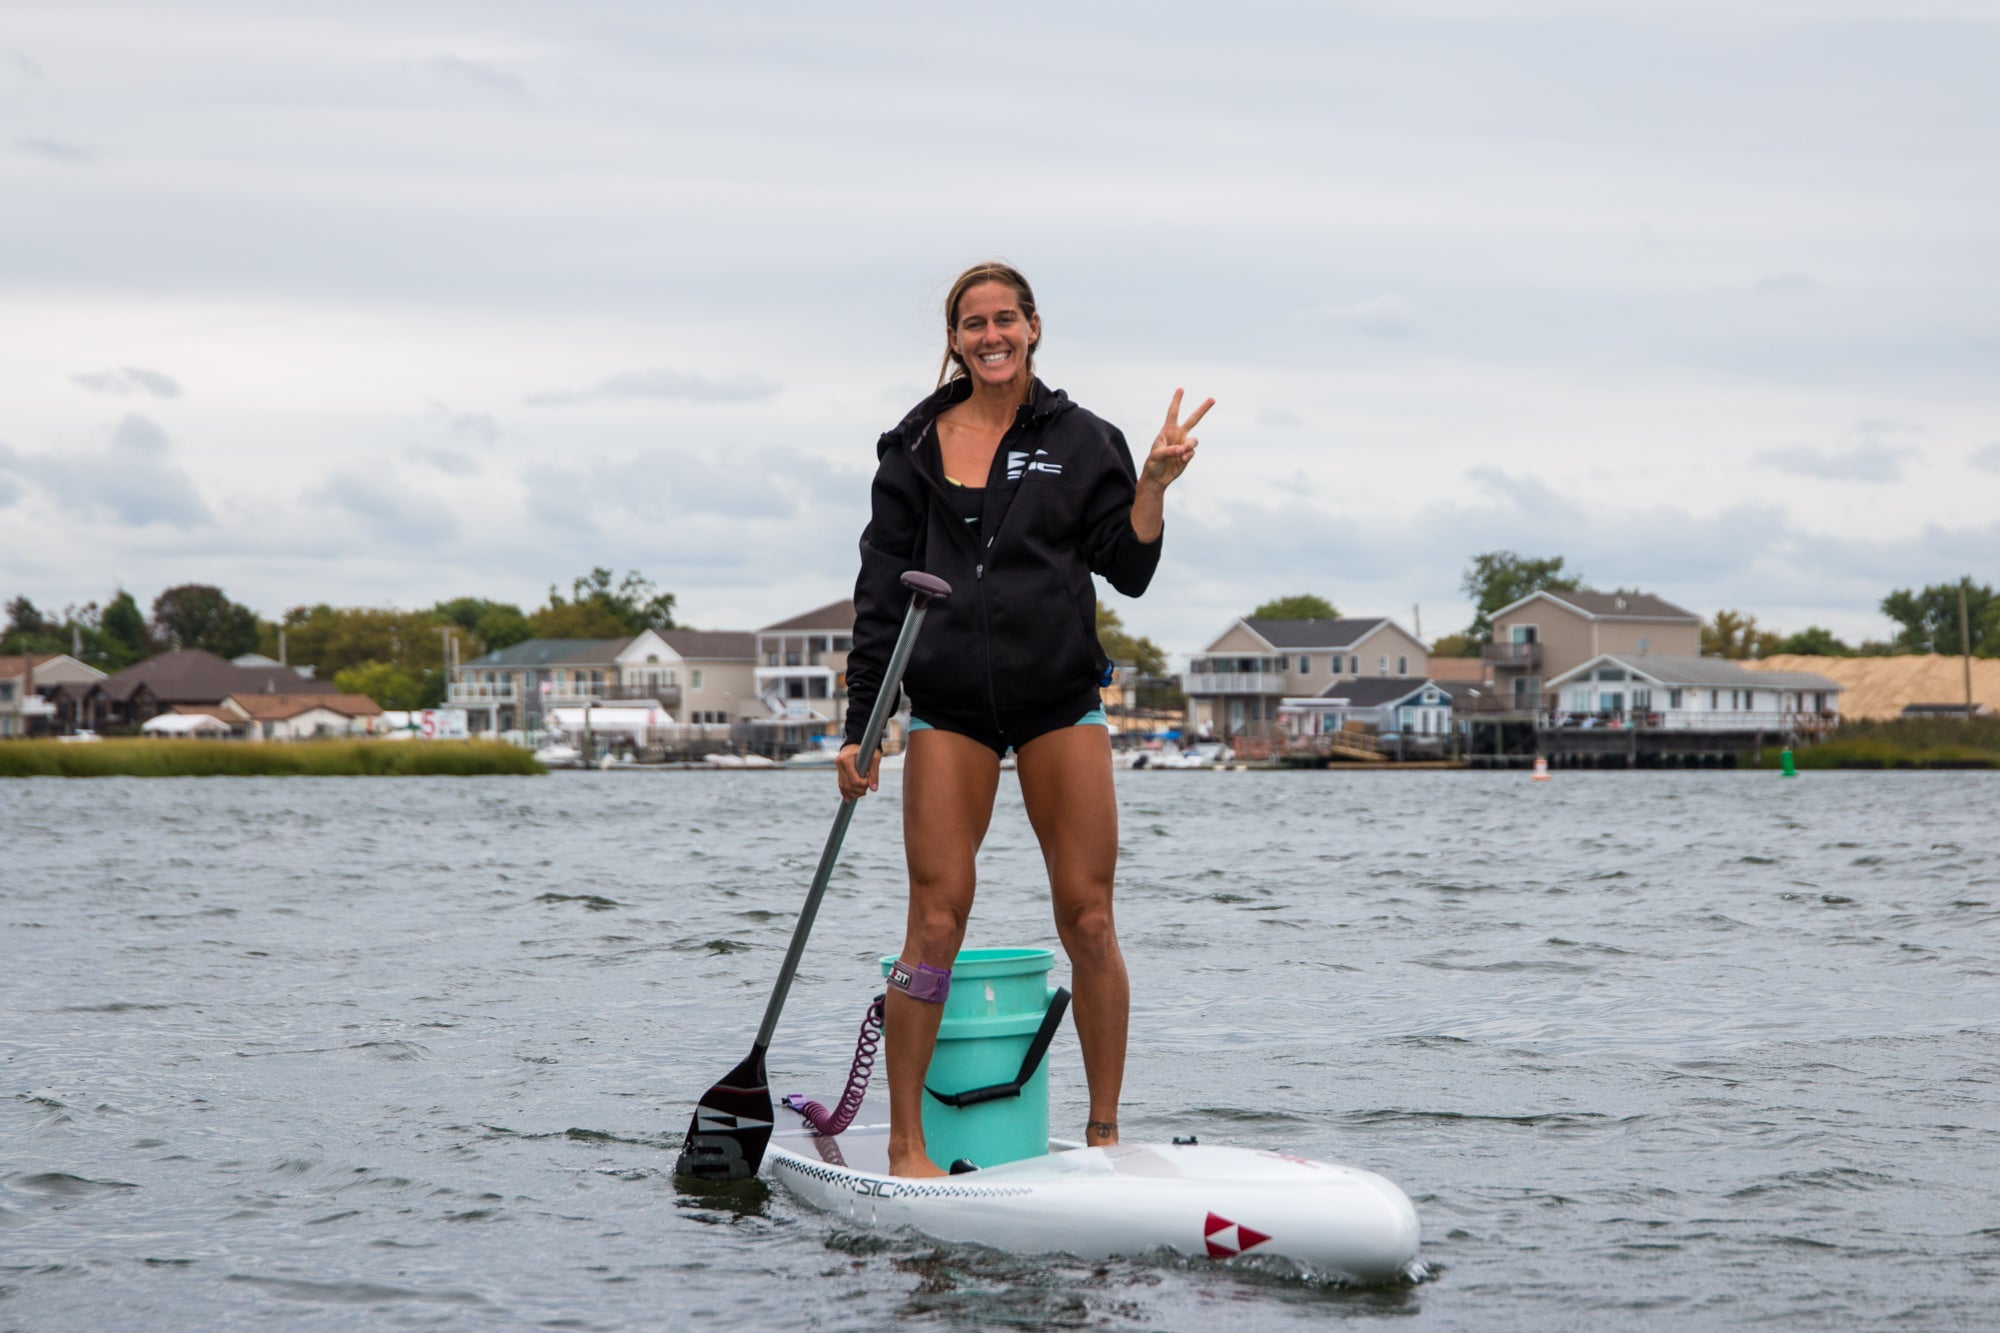 Seychelle Webster at New York SUP Beach Clean at the APP World Tour 2019